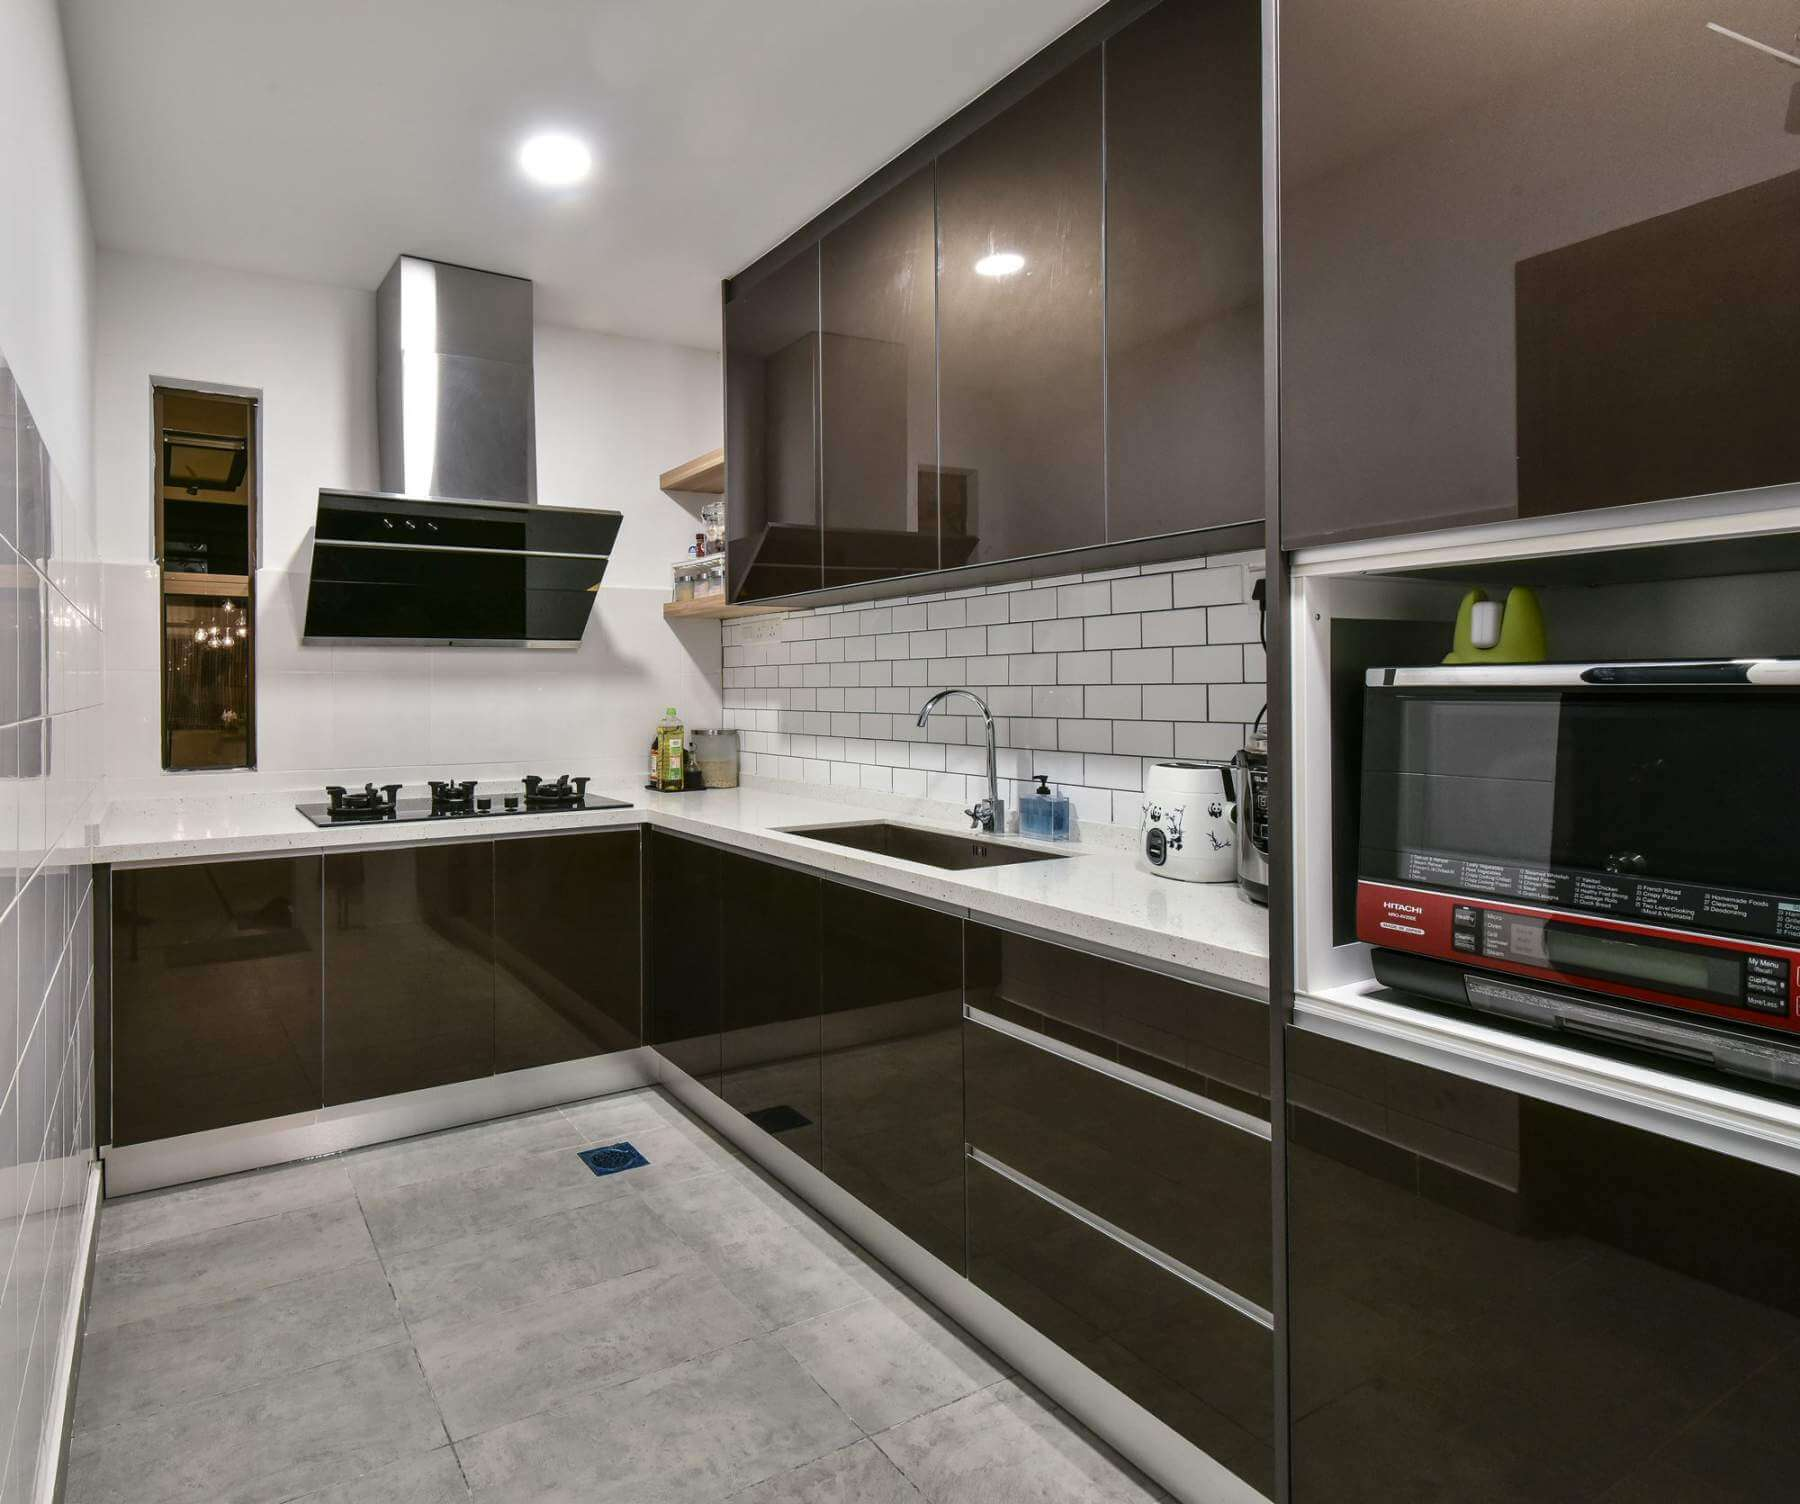 Modern Cabinet Kitchen: Laguna Kitchen And Bath Design And